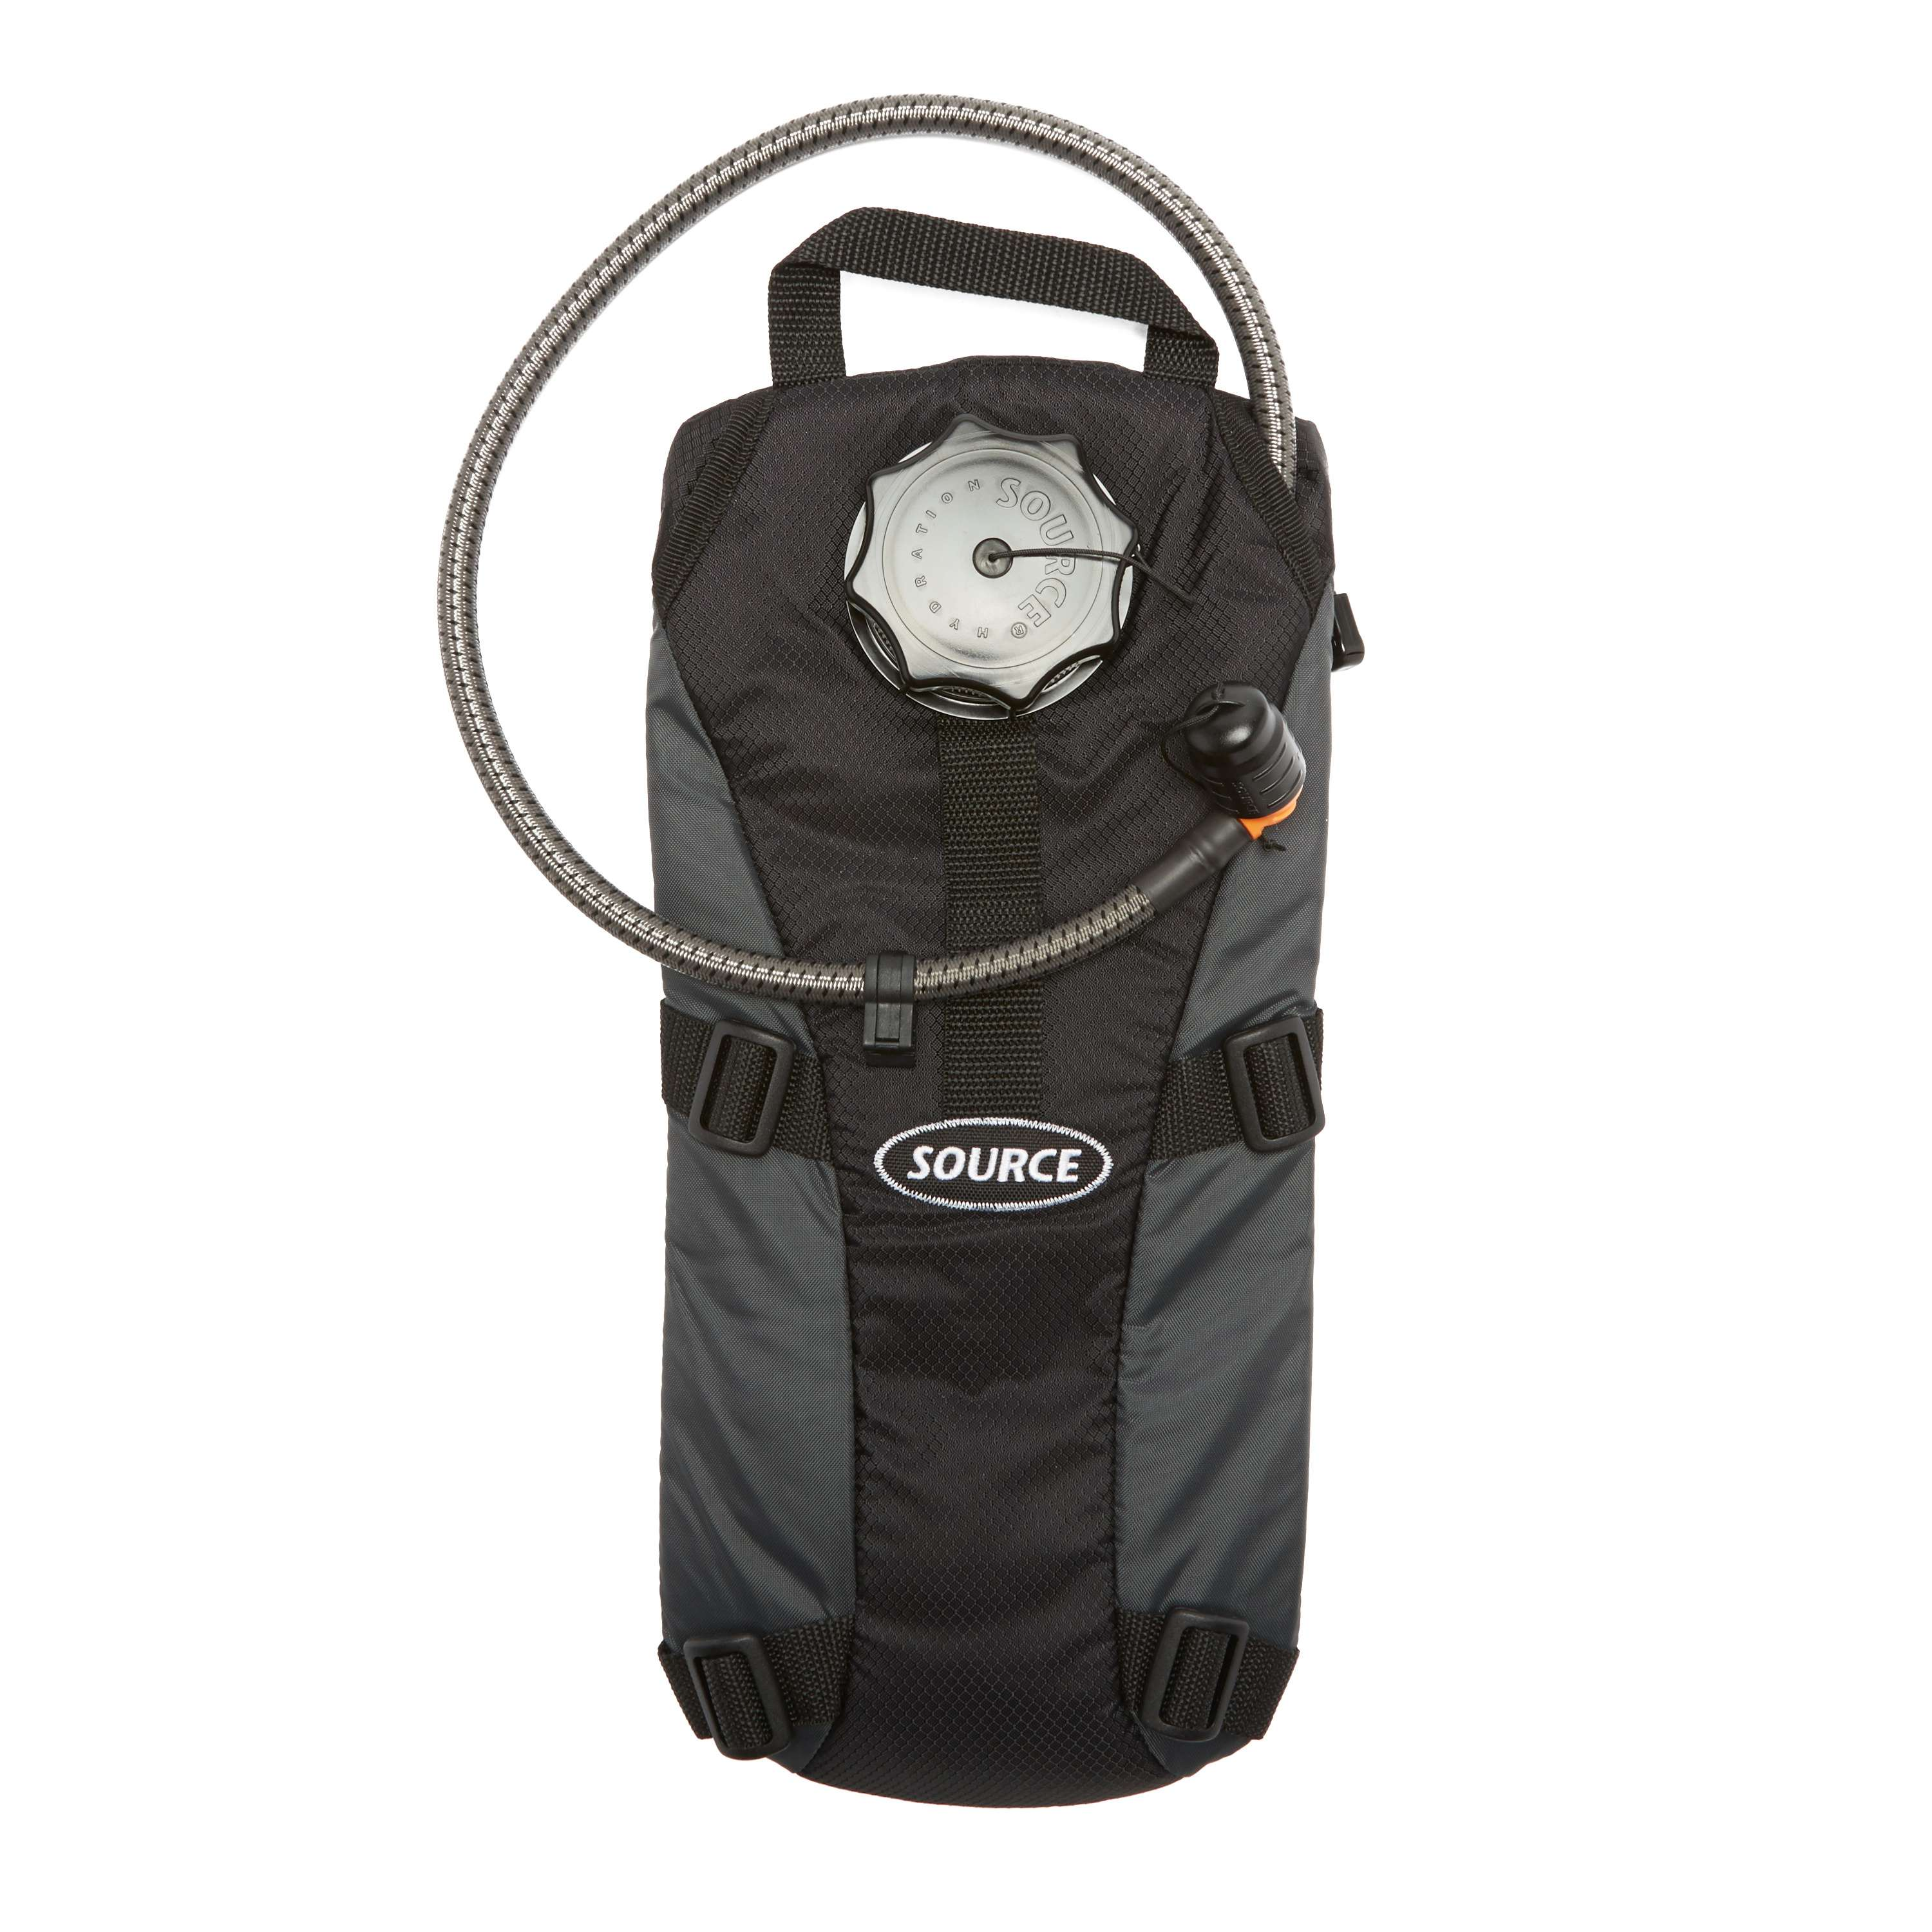 SOURCE Wraptank 2 Litre Pack